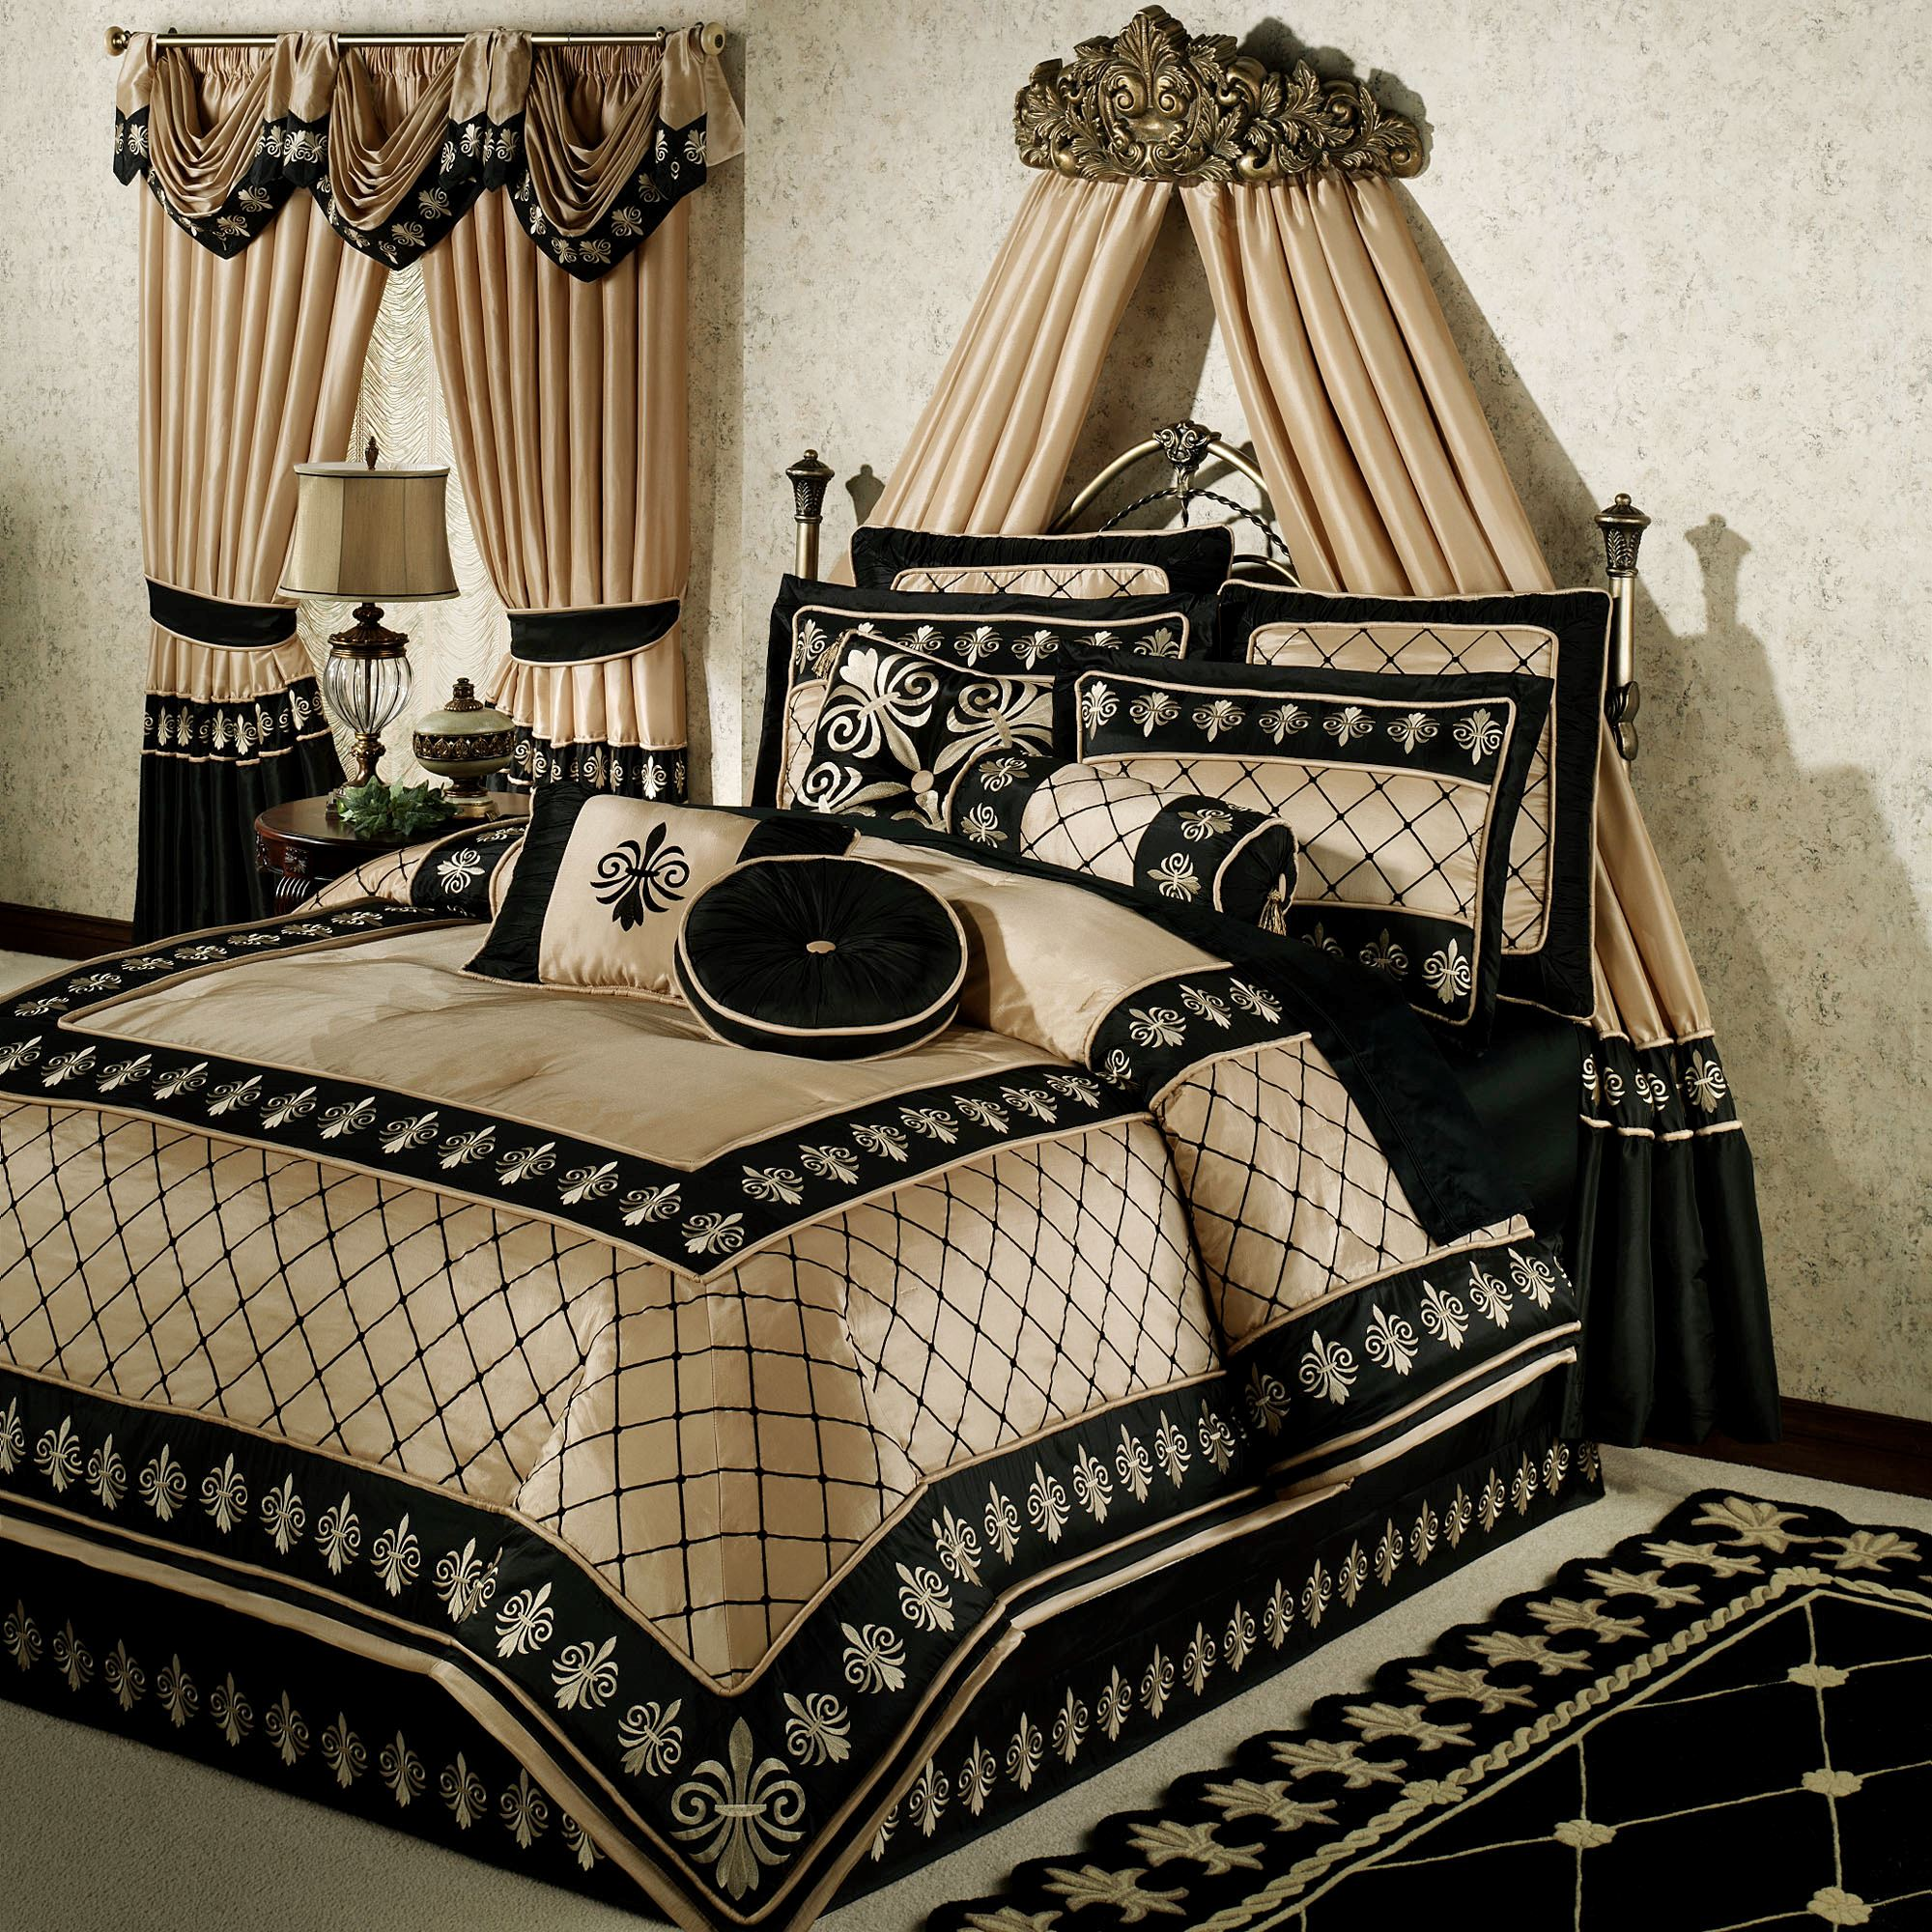 onyx empire comforter bedding